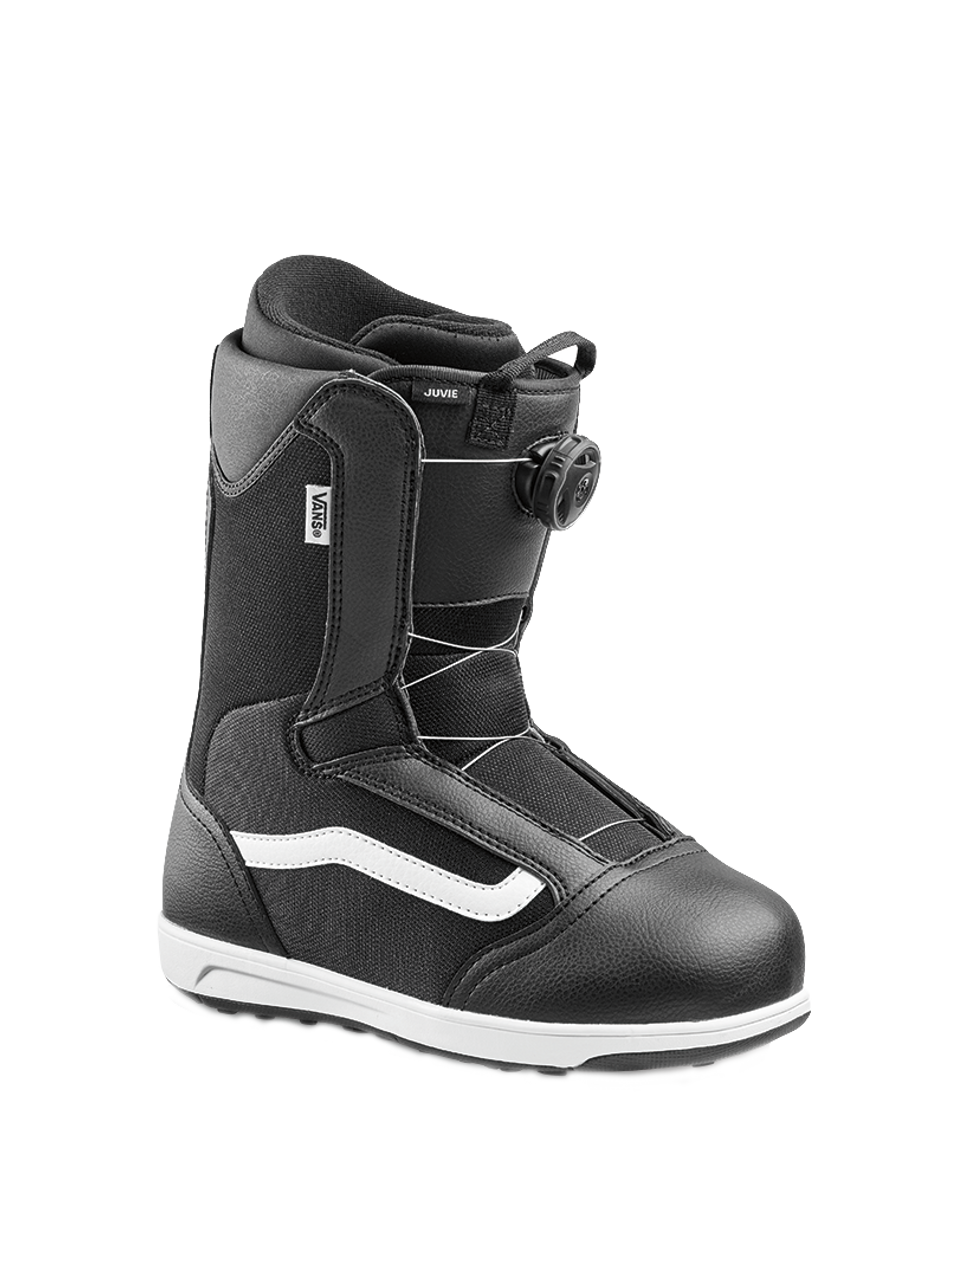 9ee49d0cf9 Vans Juvie BOA Youth Boot 2019 - Gear West Ski and Run